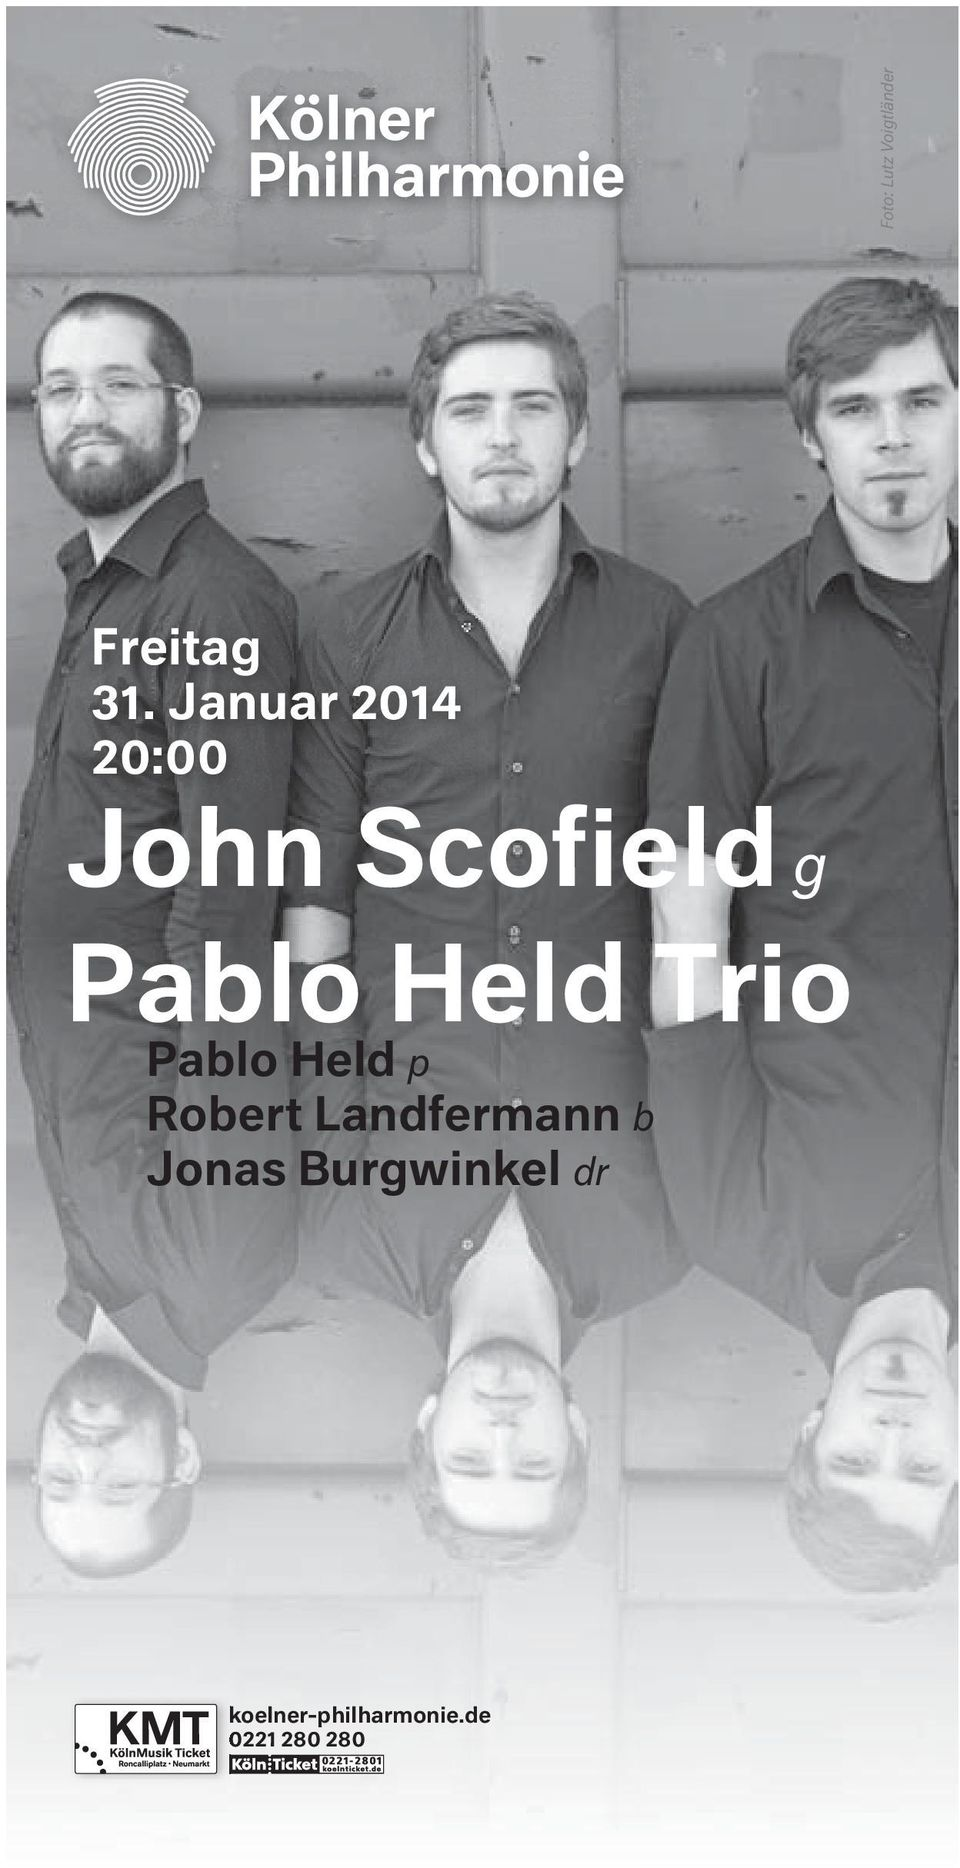 Trio Pablo Held p Robert Landfermann b